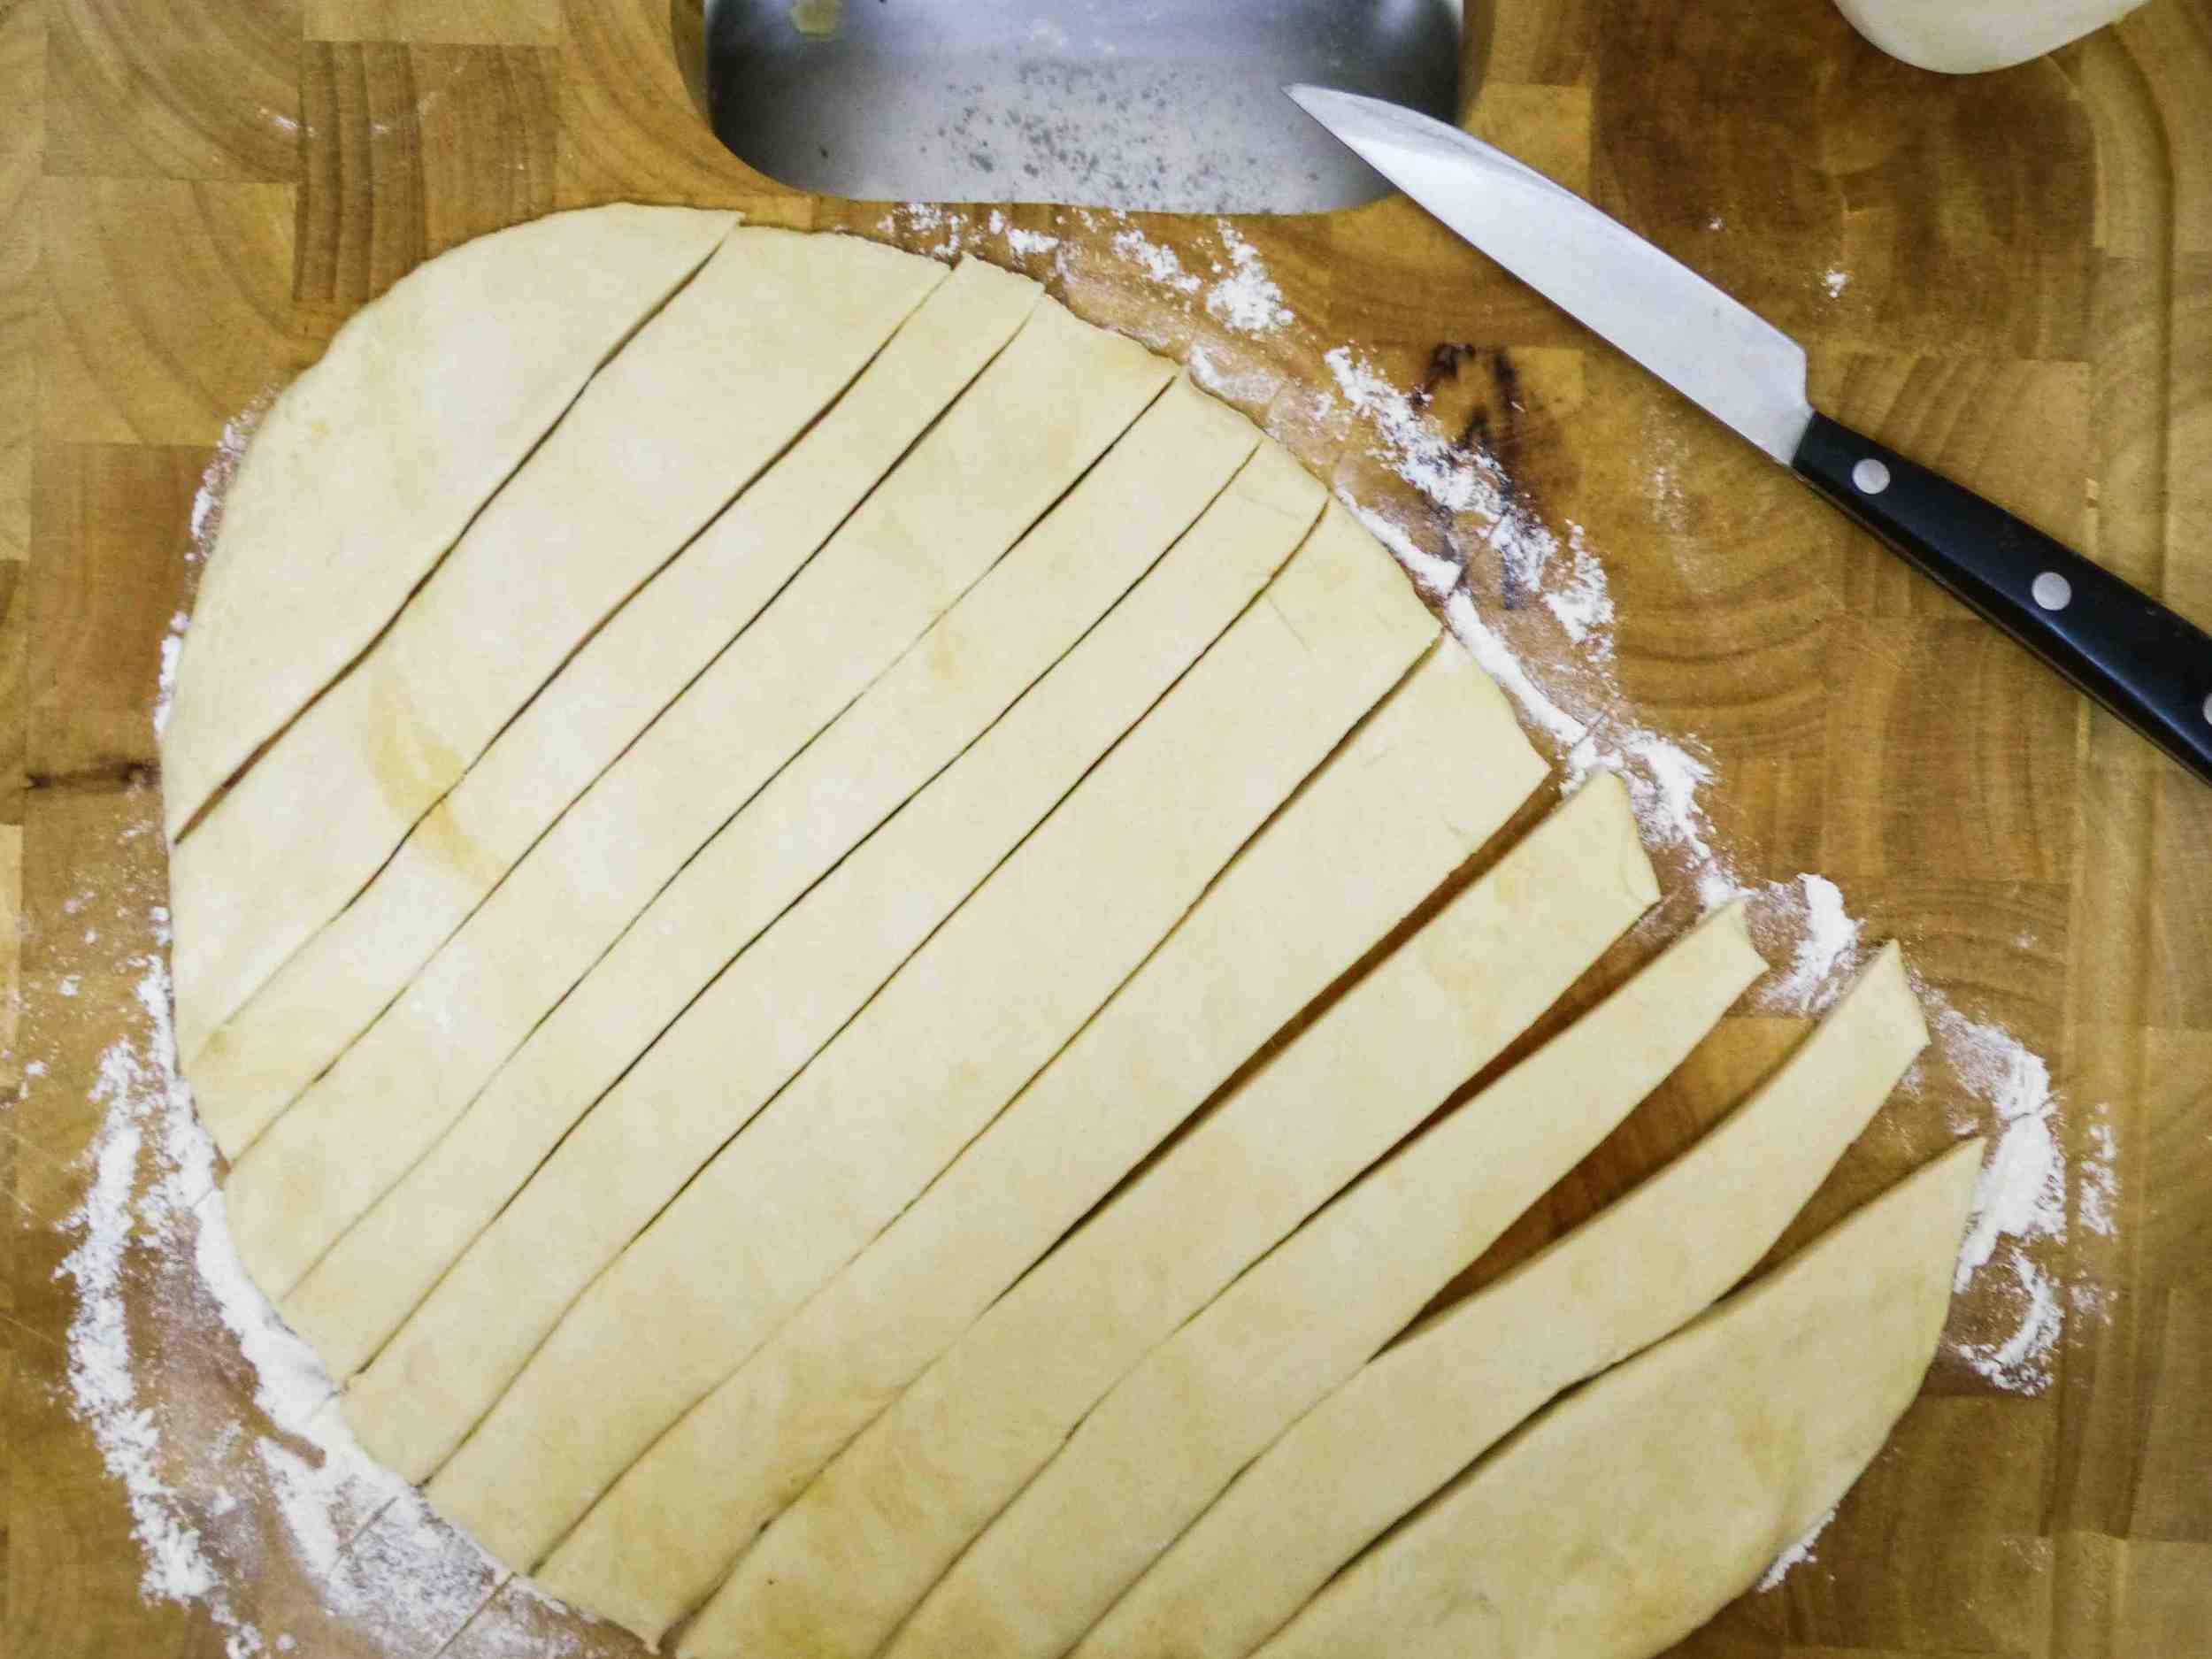 After rolling out the dough to a flat sheet, cut the sheet into 10-12 strips.